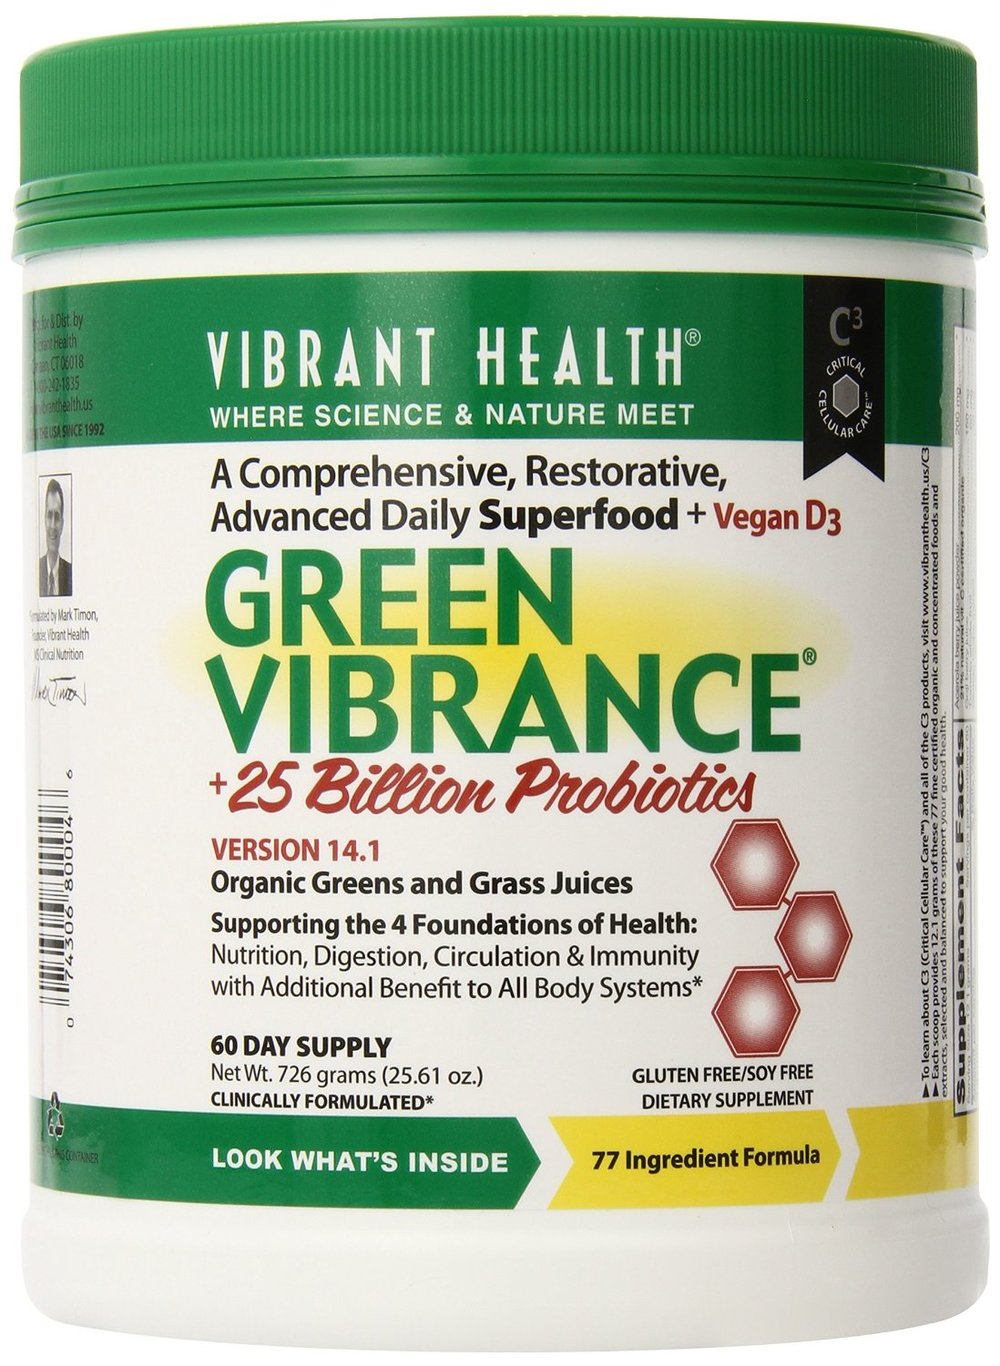 Green Vibrance is an   award winning green superfood  , which     has replaced my daily multi-vitamin.   It contains 77 different ingredients, as well as 25 billion probiotics from 12 different stains (  Read More  ). Most importantly, because it's sourced from real food, it is better for you than the synthetic vitamins you're likely taking and has much higher absorption rates.